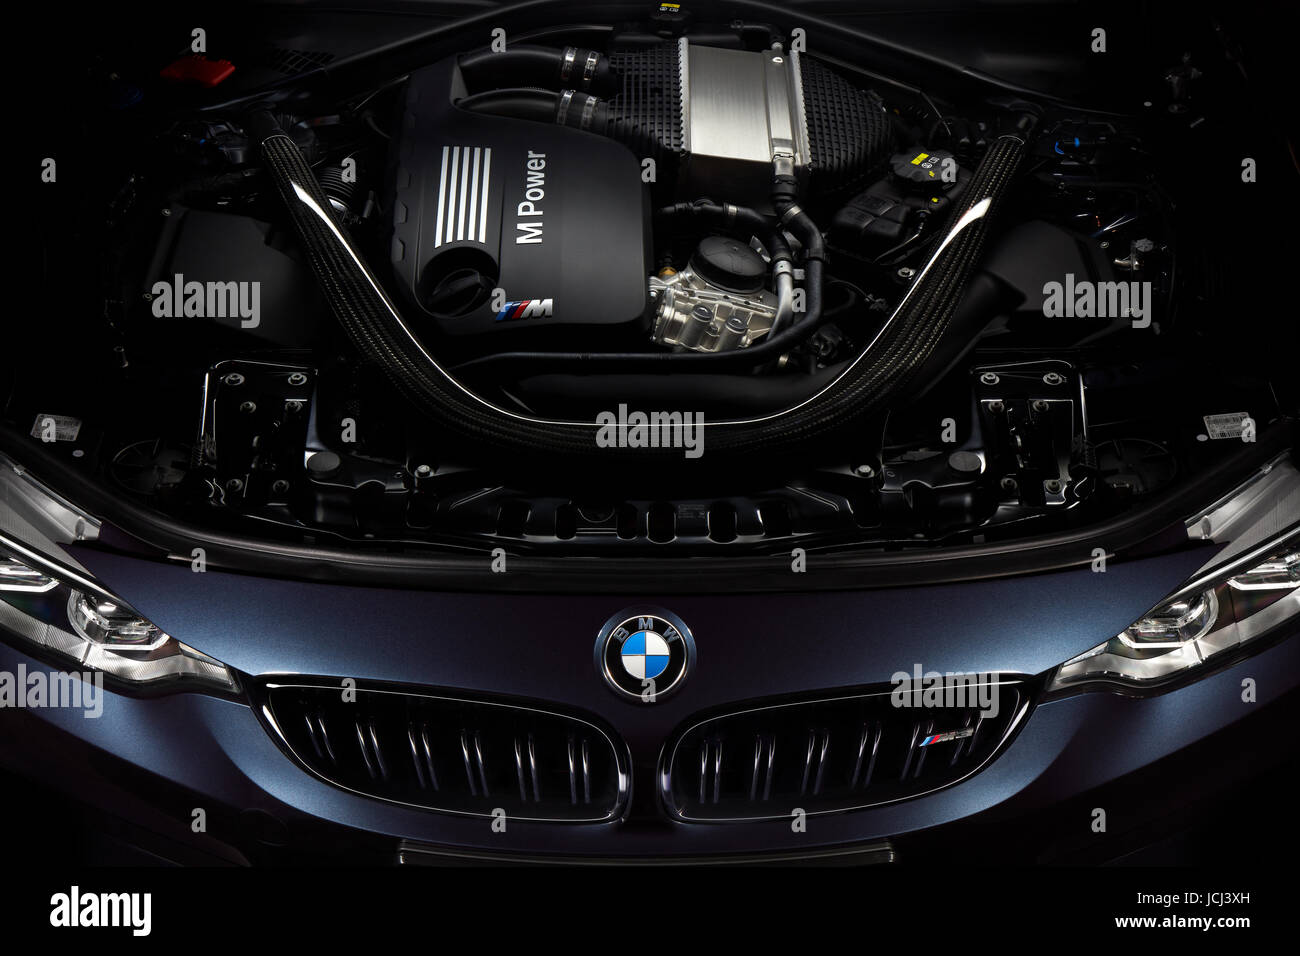 Engine of BMW M3 30 Jahre Edition - Limited edition 500 car, Katowice, Poland, 03.12.2016 Stock Photo